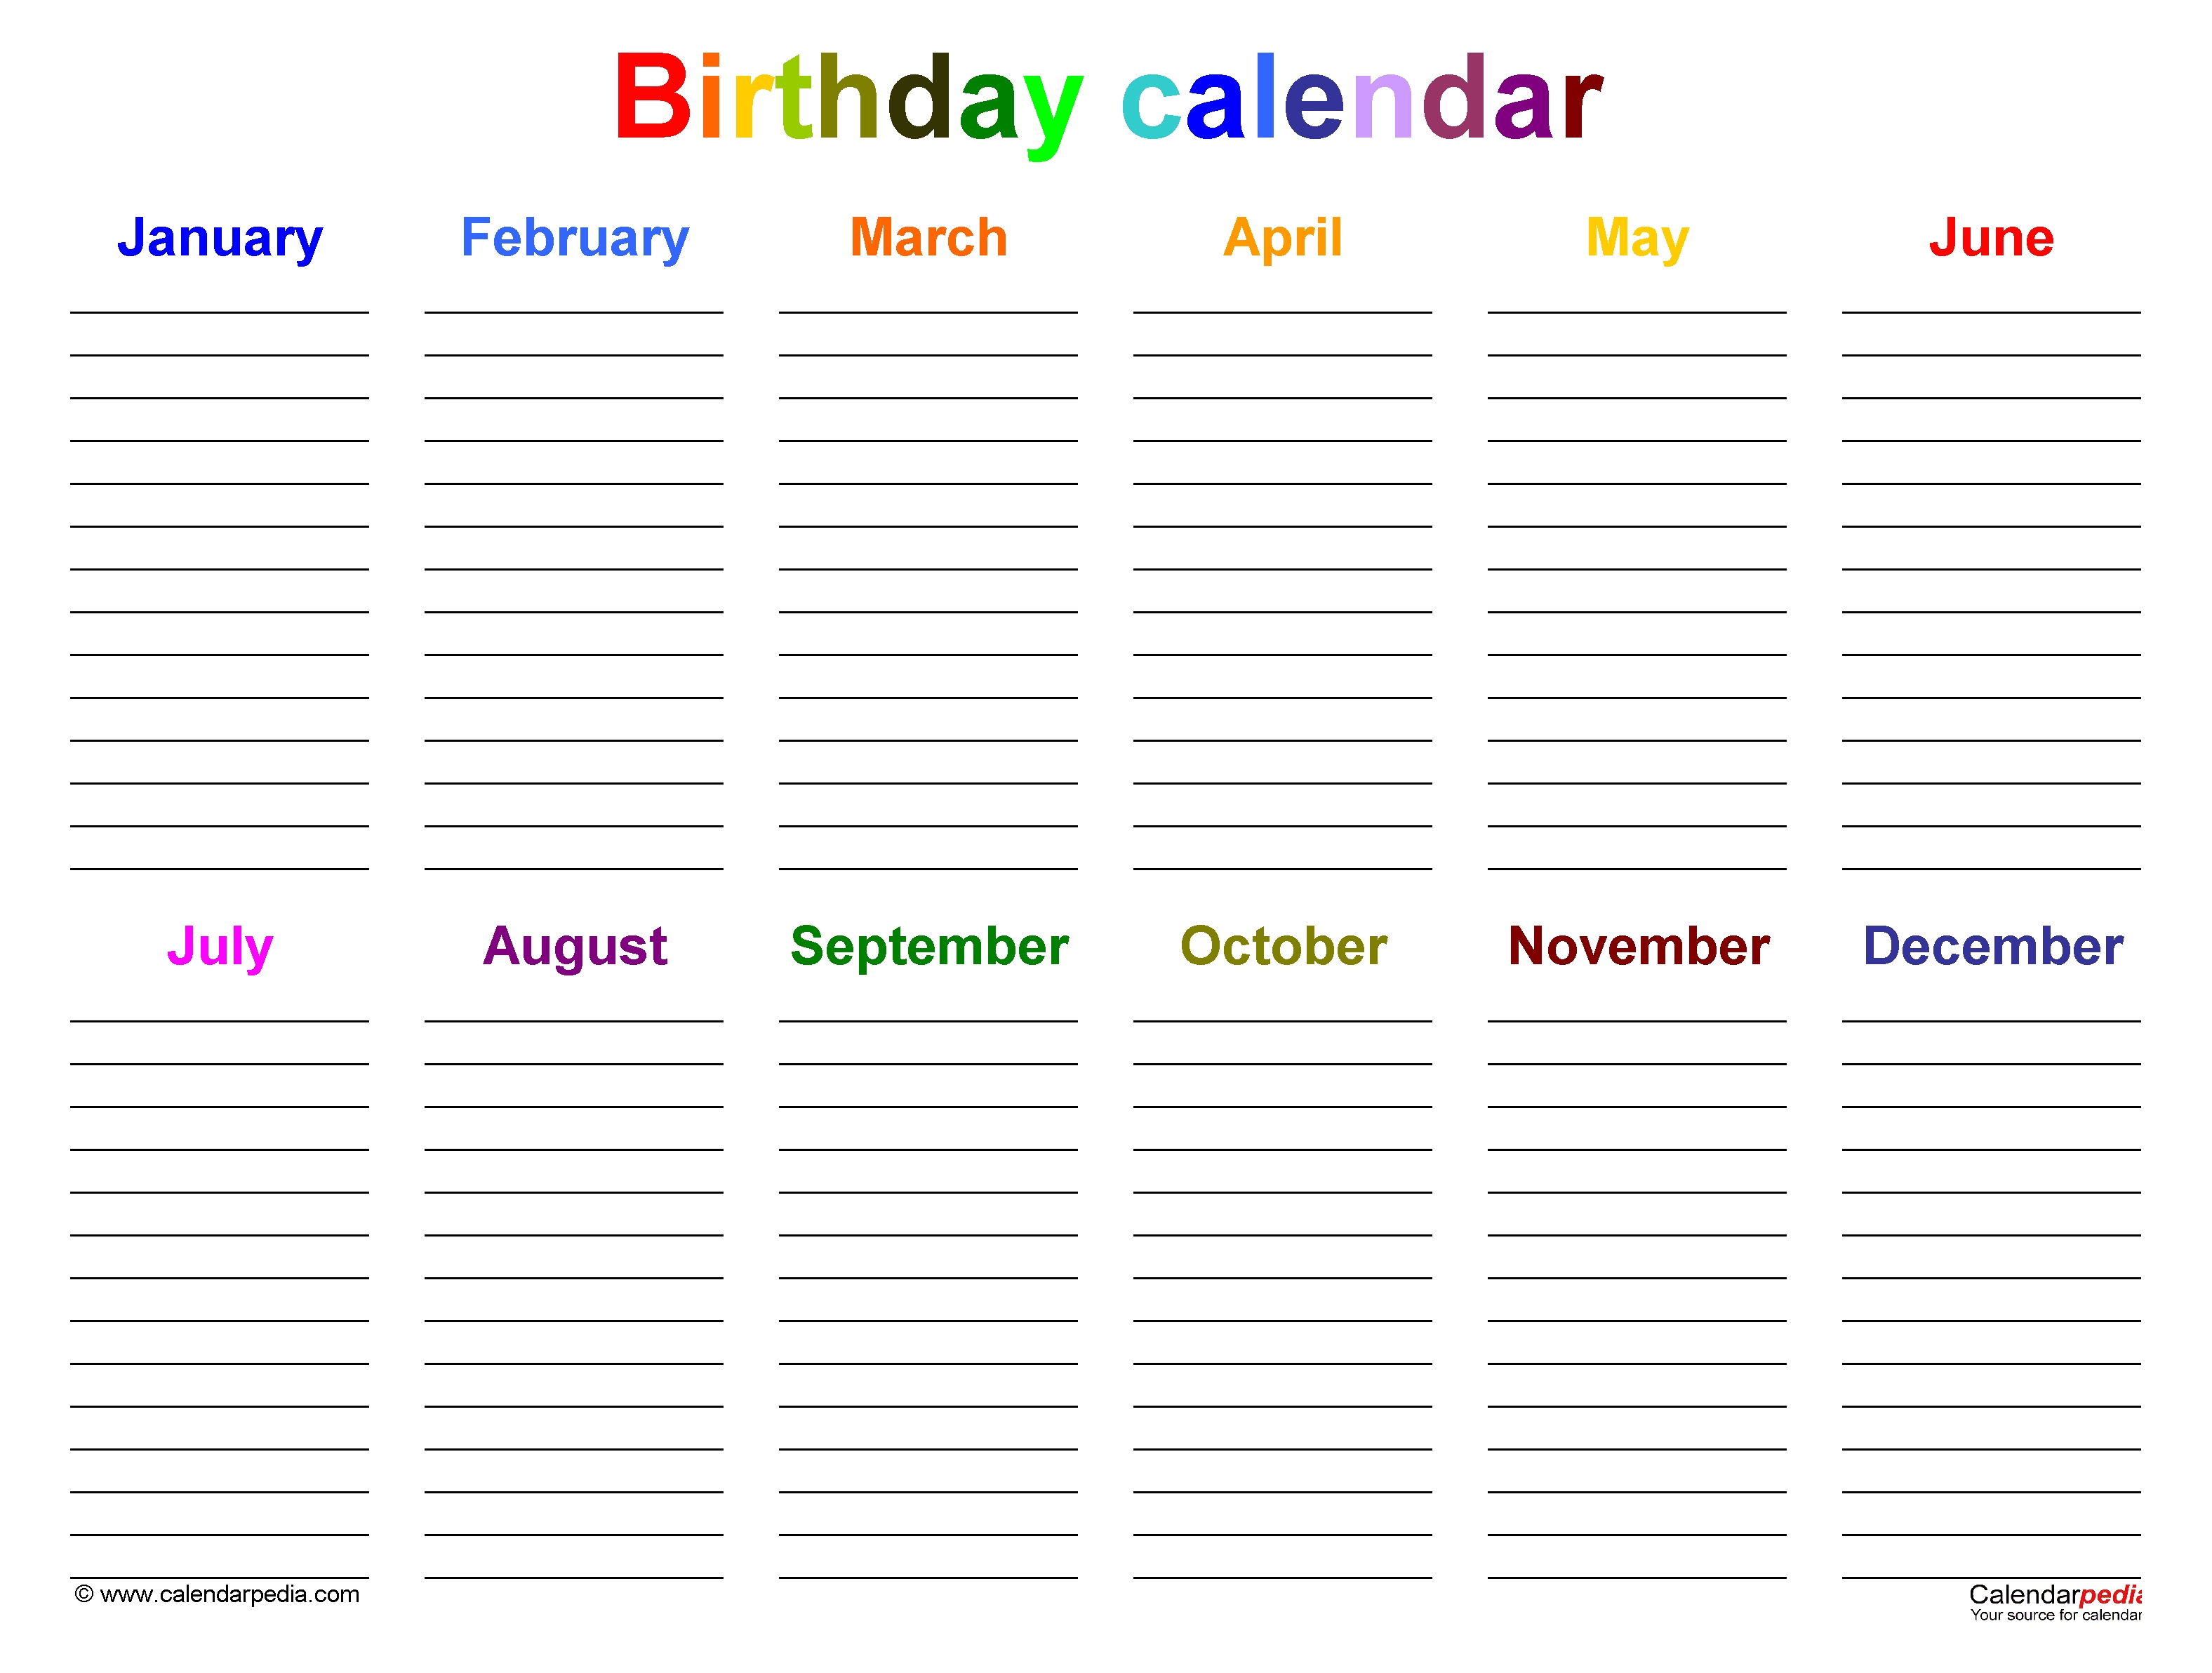 Birthday Calendars - Free Printable Microsoft Word Templates